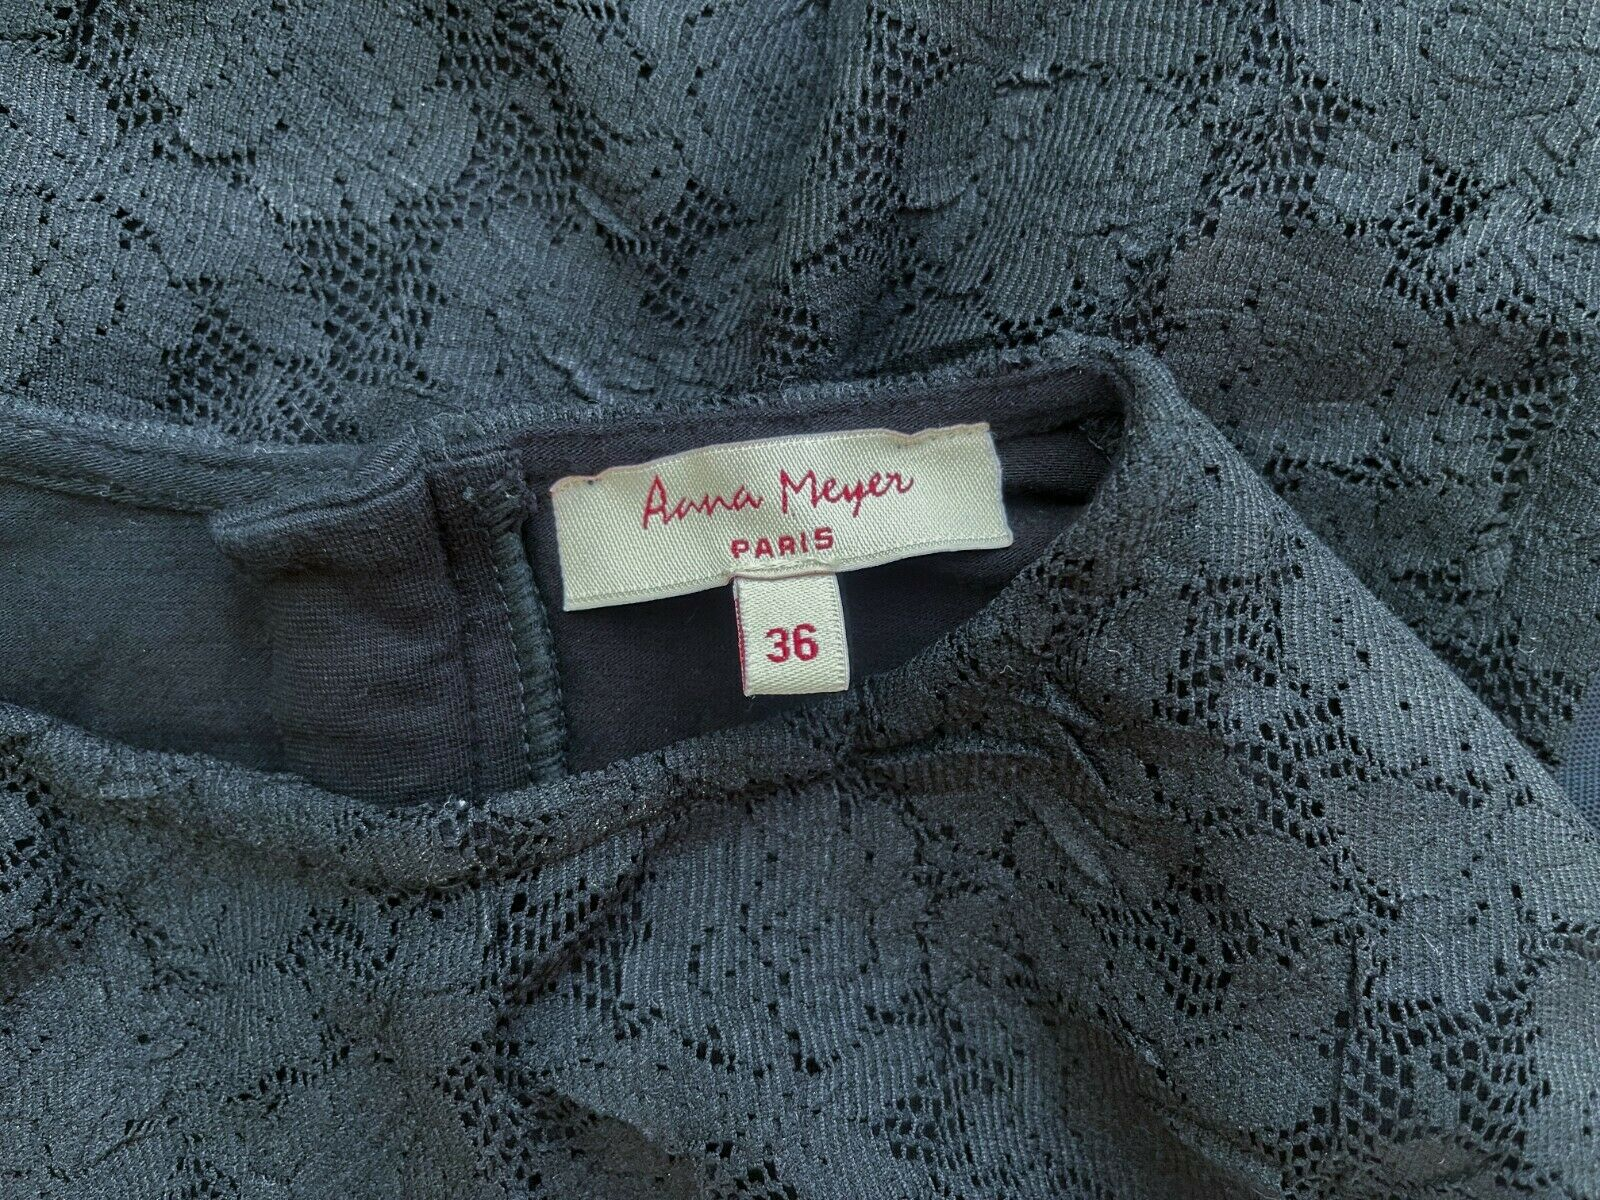 ANNA MEYER Paris Black Lace Blouse Top with Flare… - image 3